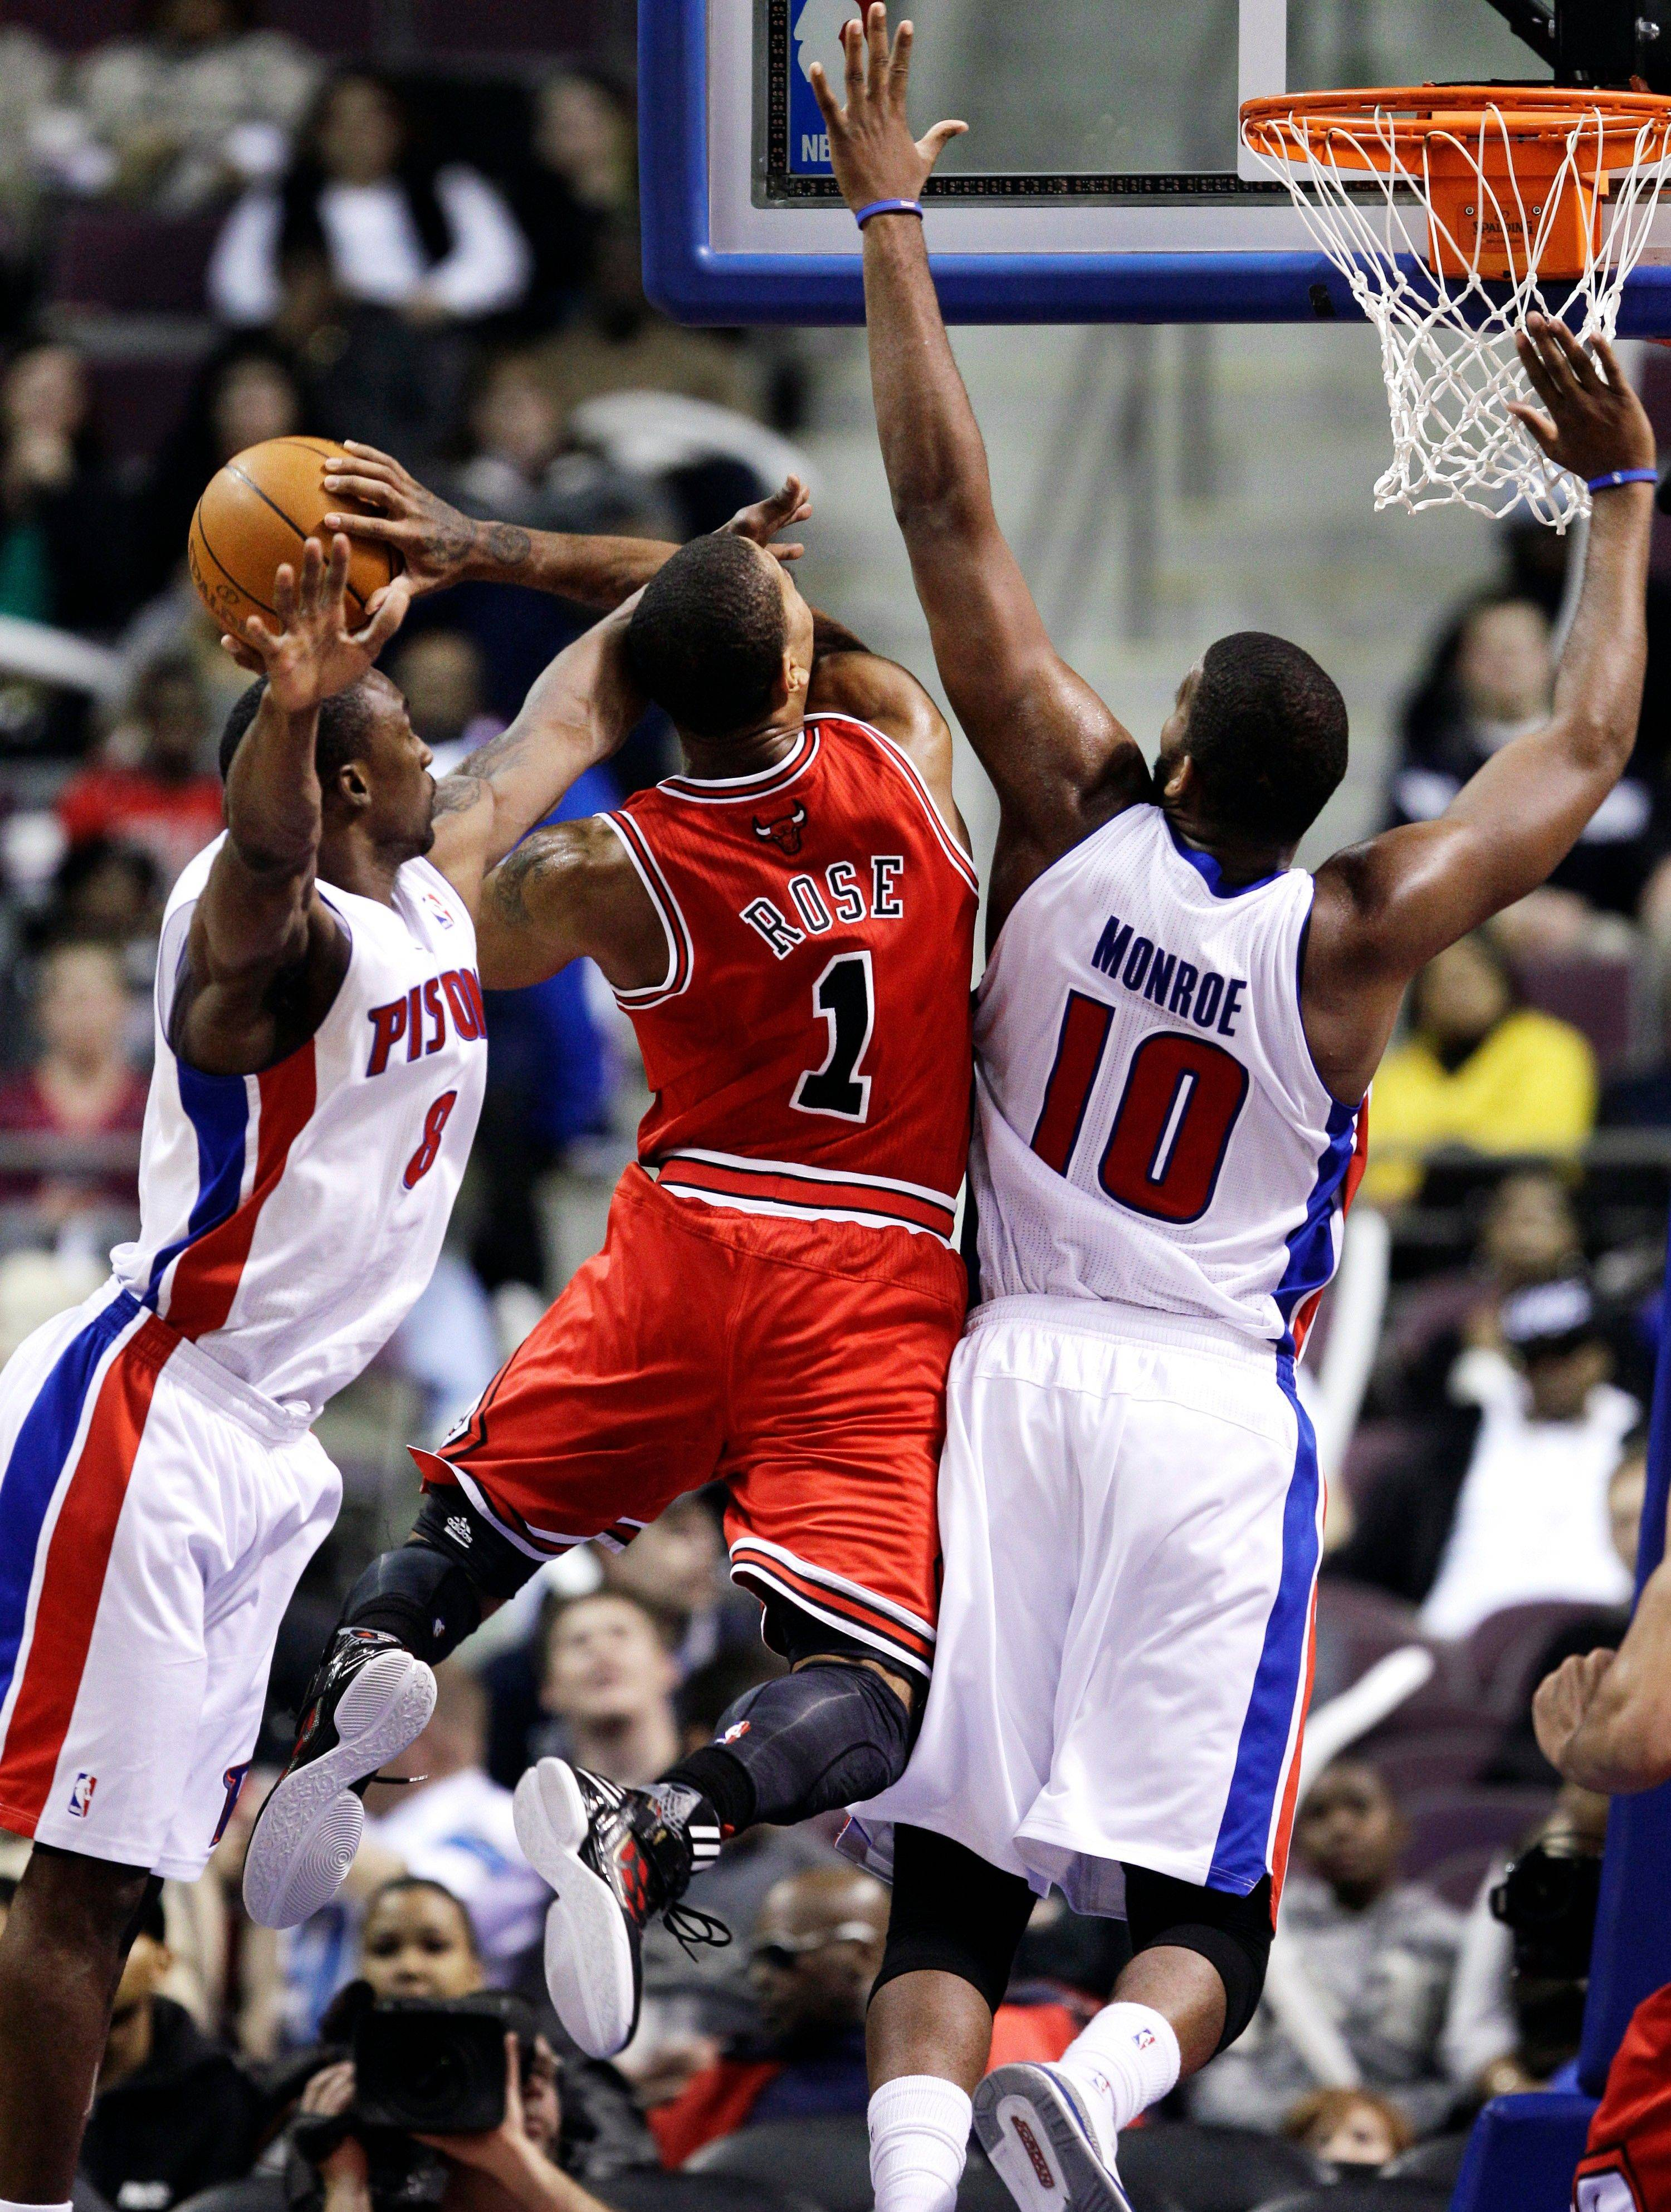 Bulls guard Derrick Rose drives on the Pistons' Ben Gordon (8) and center Greg Monroe (10) in the fourth quarter Wednesday night. Chicago won 99-83.